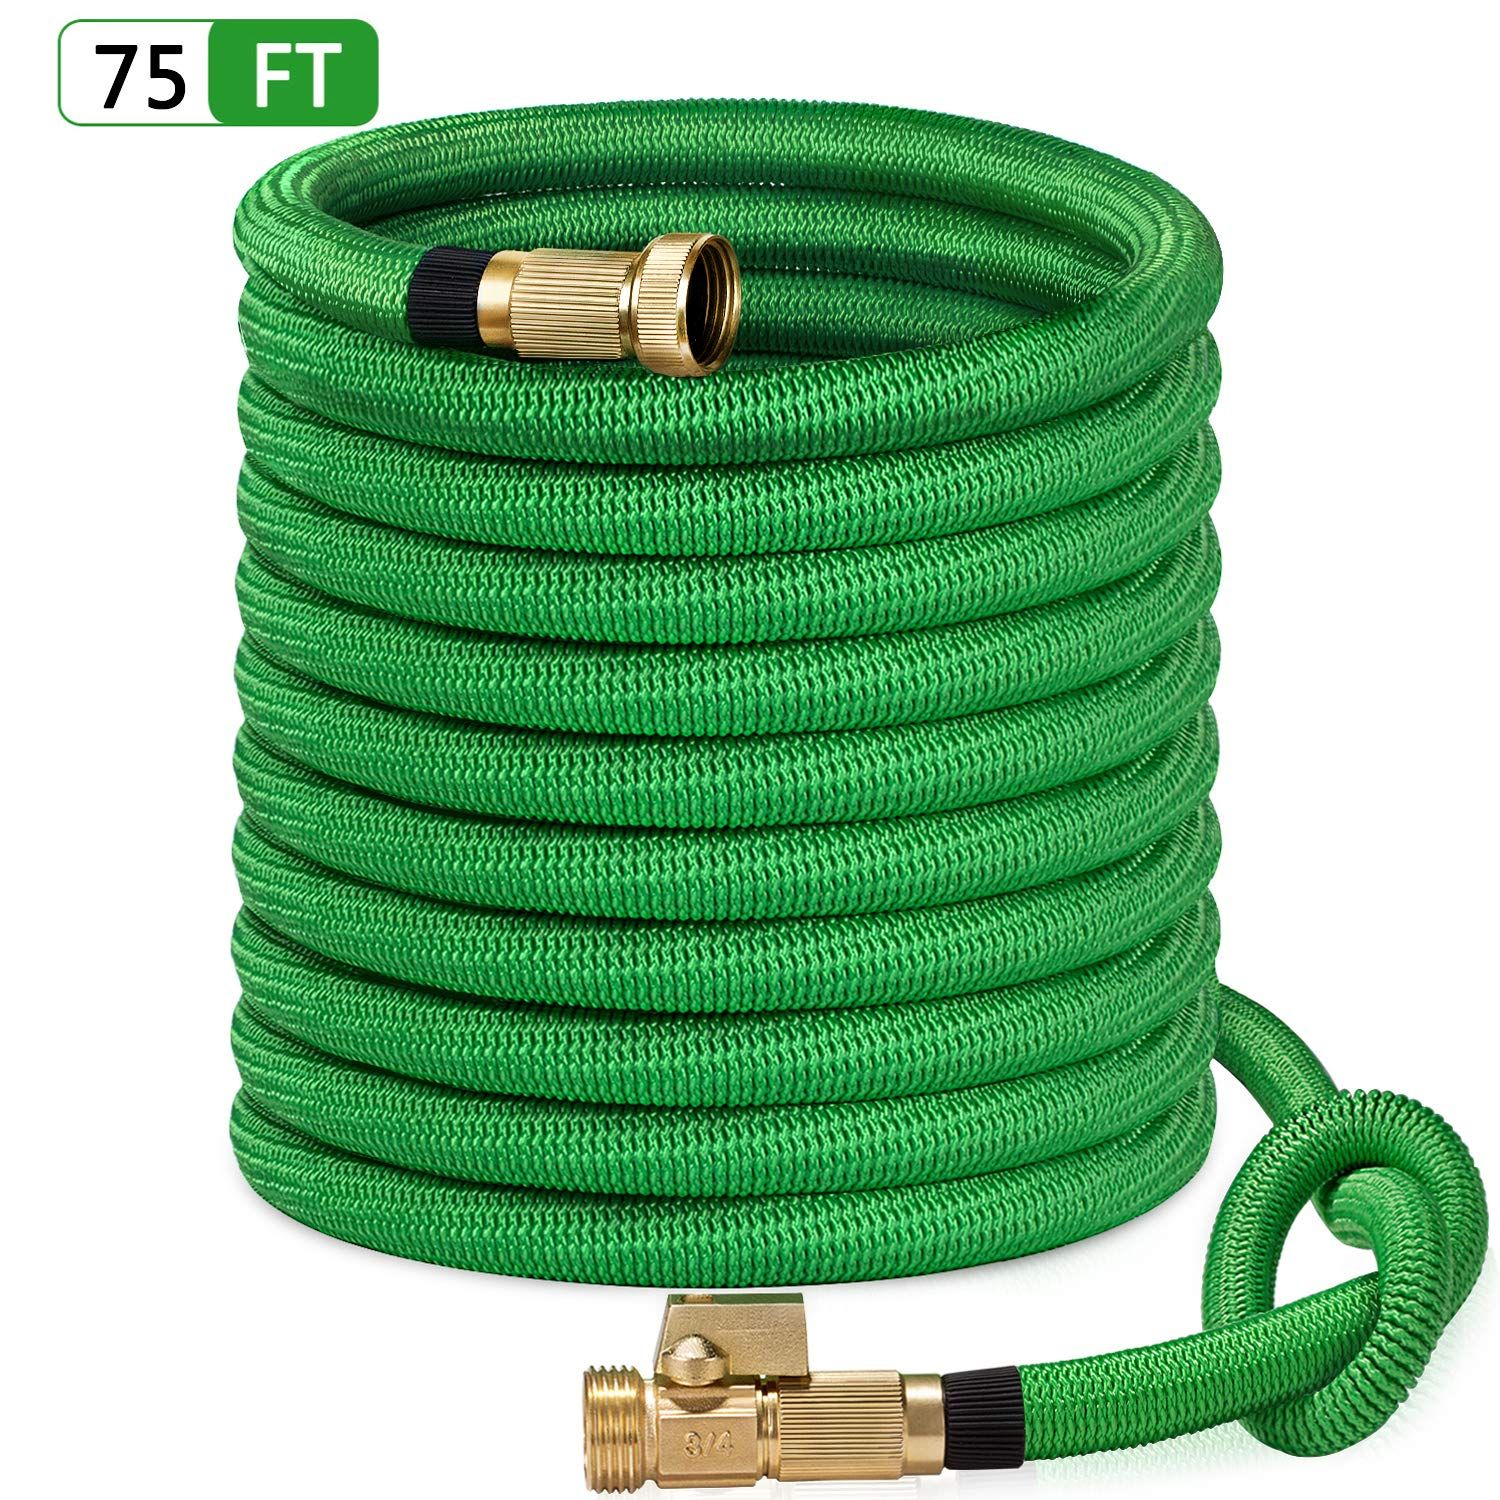 Sungreen 75ft Garden Hose All New 2019 Expandable Water Hose With 3 4 Solid Brass Fittings Extra Strength Fabric F Garden Hose Metal Garden Hose Water Hose